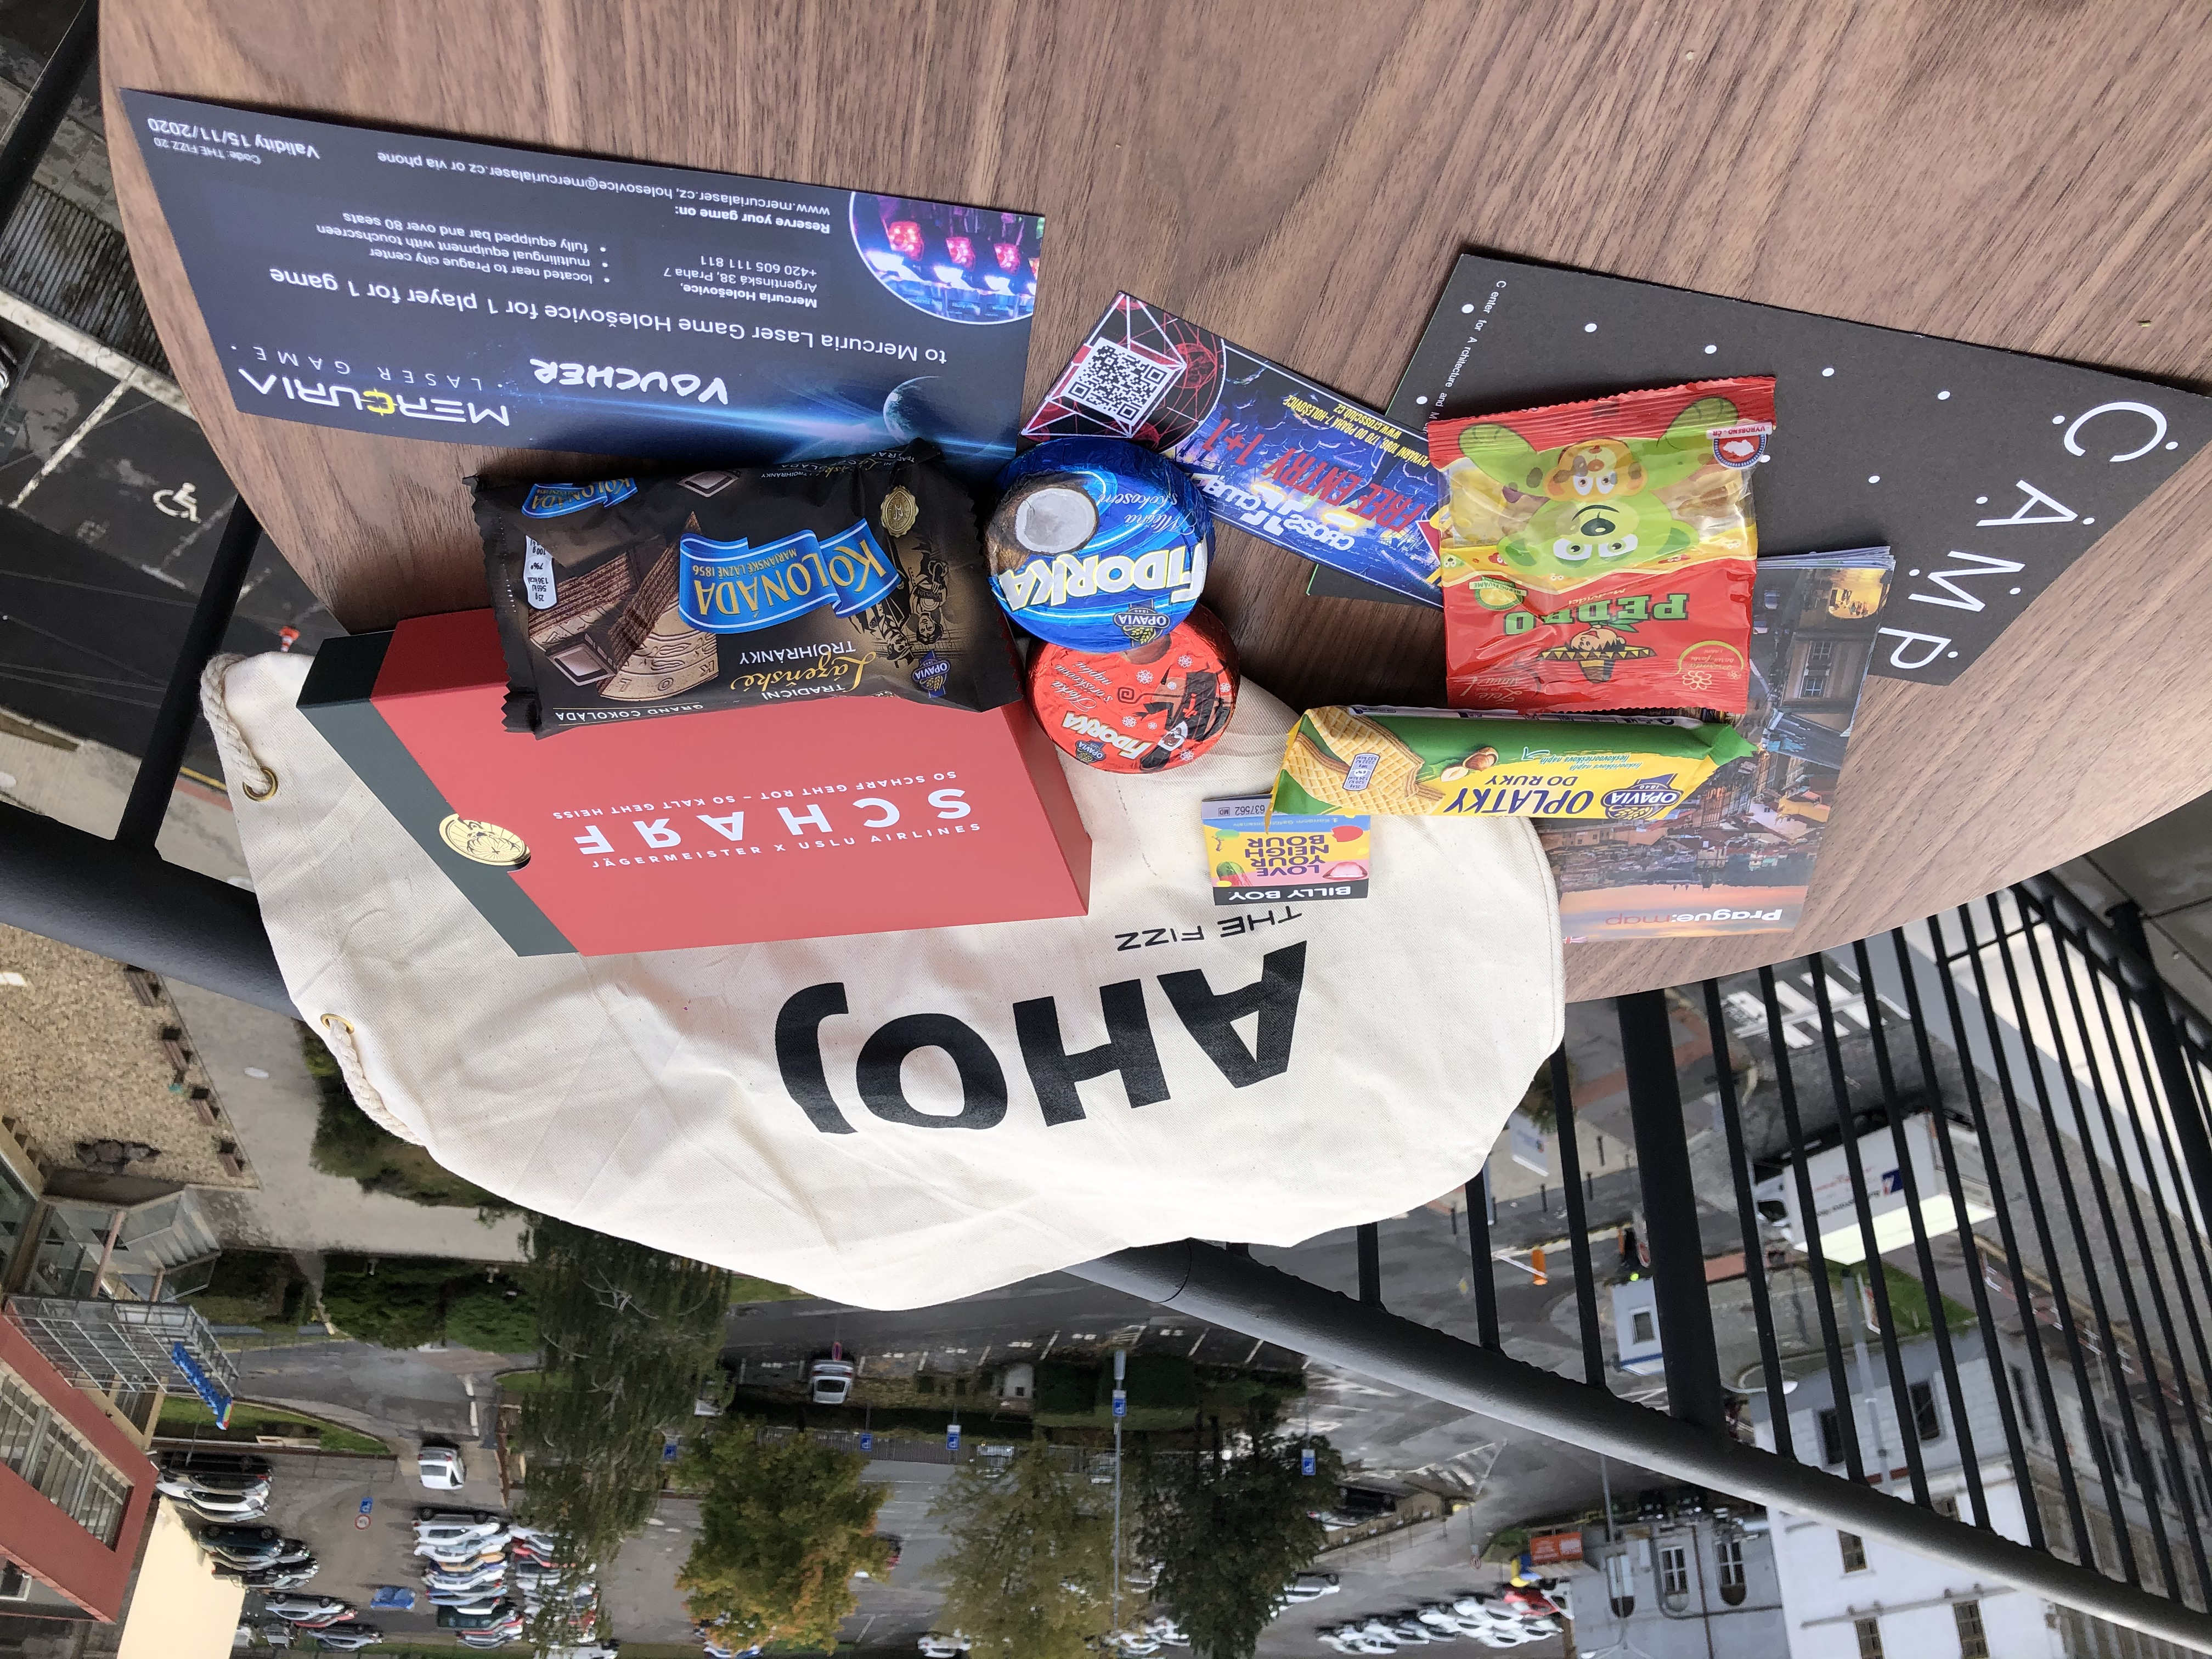 """A round table with sweets - chocolate, cookies, traditional Czech """"oplatky"""" -, vouchers and a THE FIZZ welcome bag with """"AHOJ"""" written on it."""